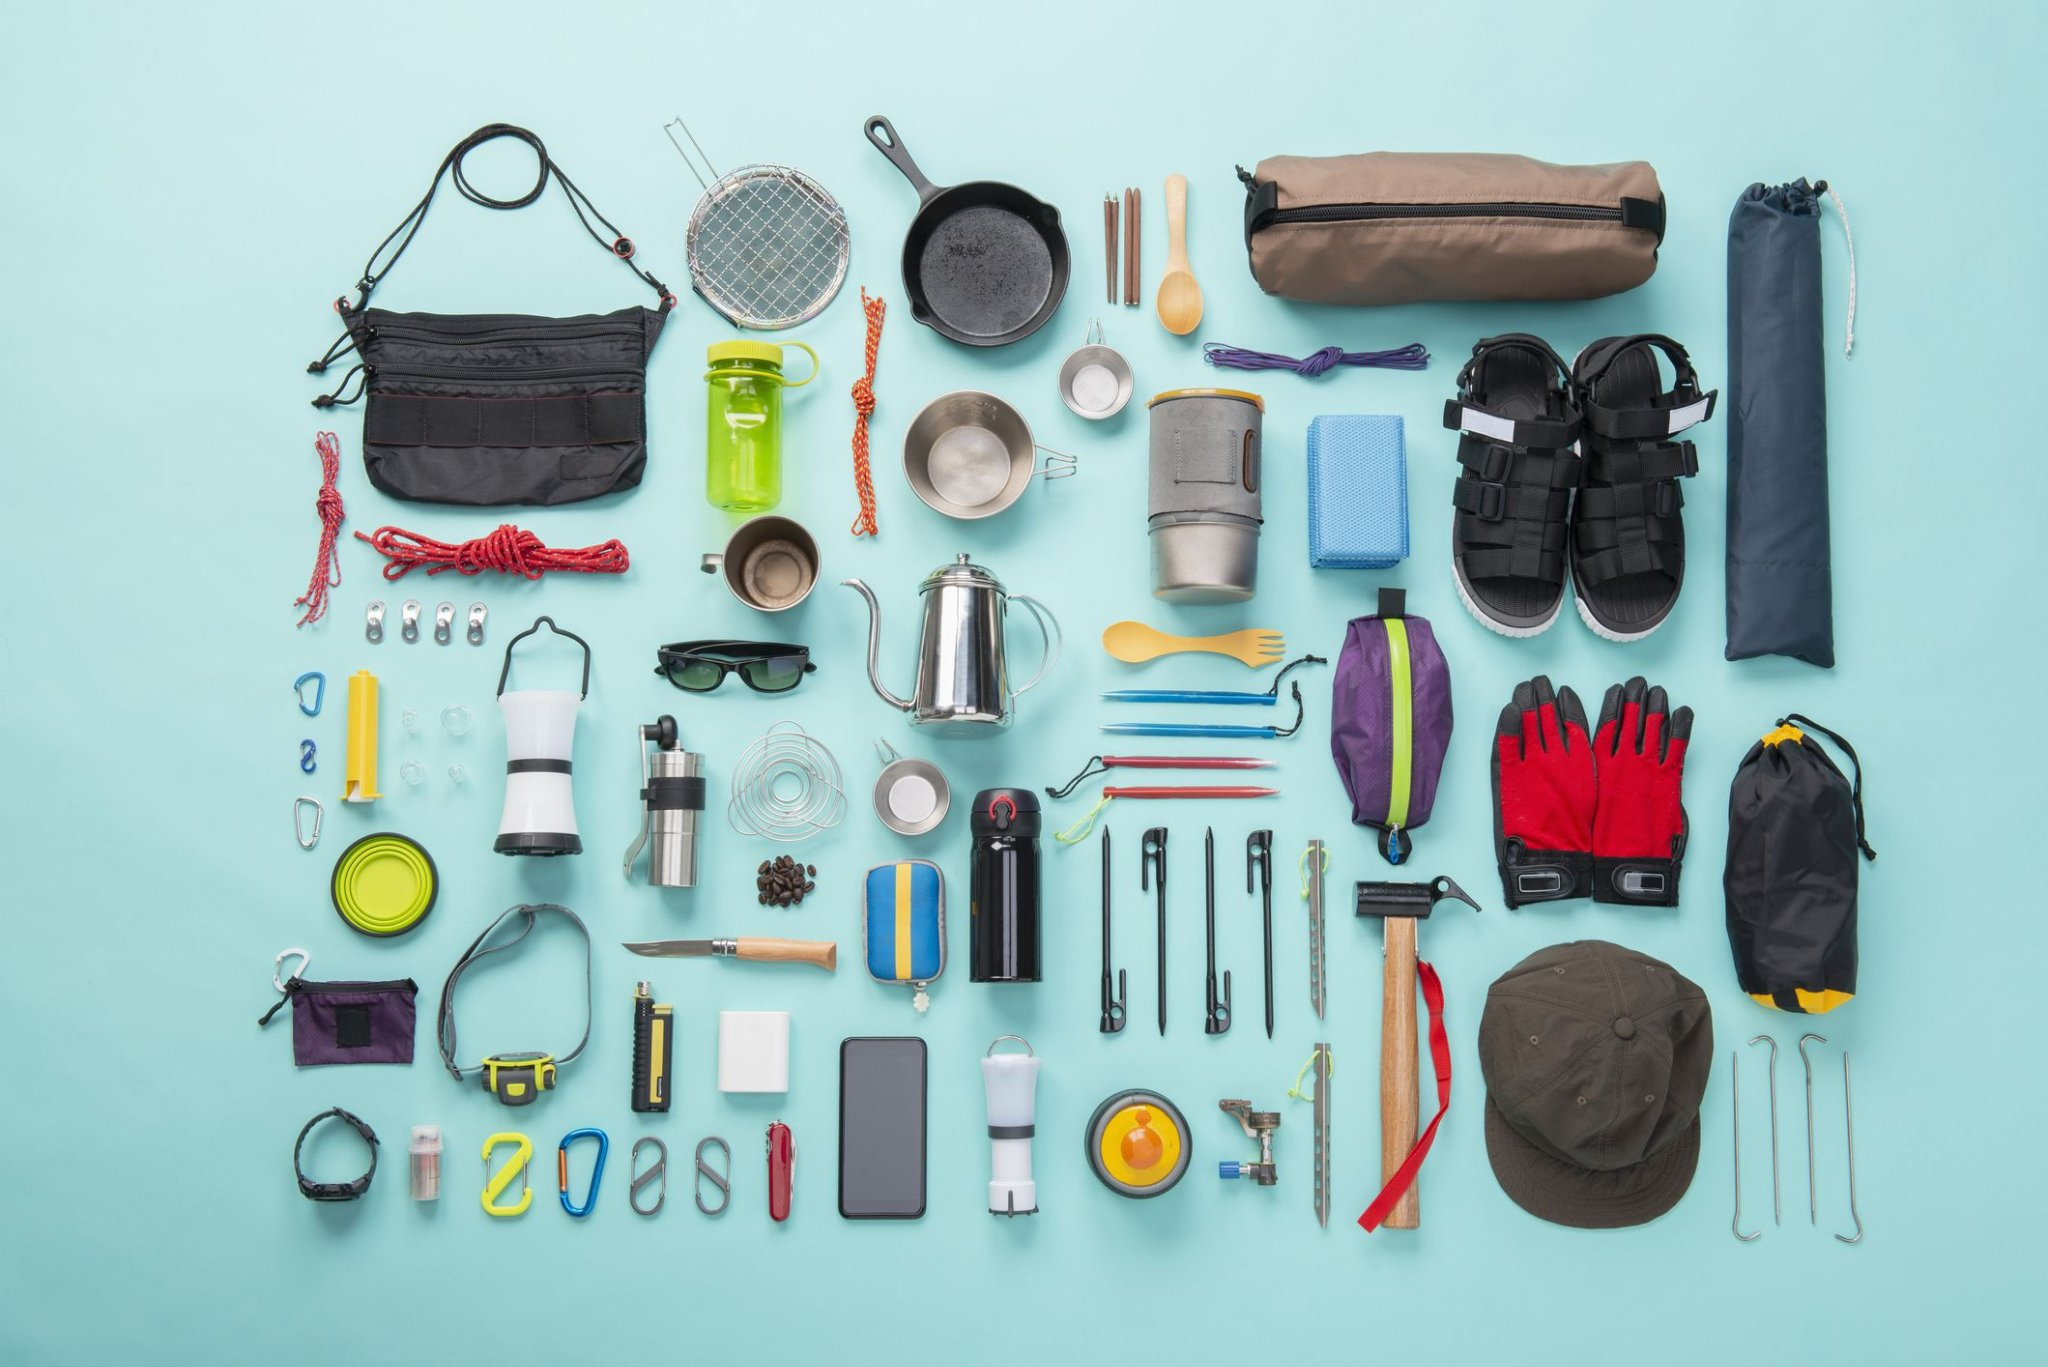 The Best Outdoor Gear to Buy, According to Experts - cover